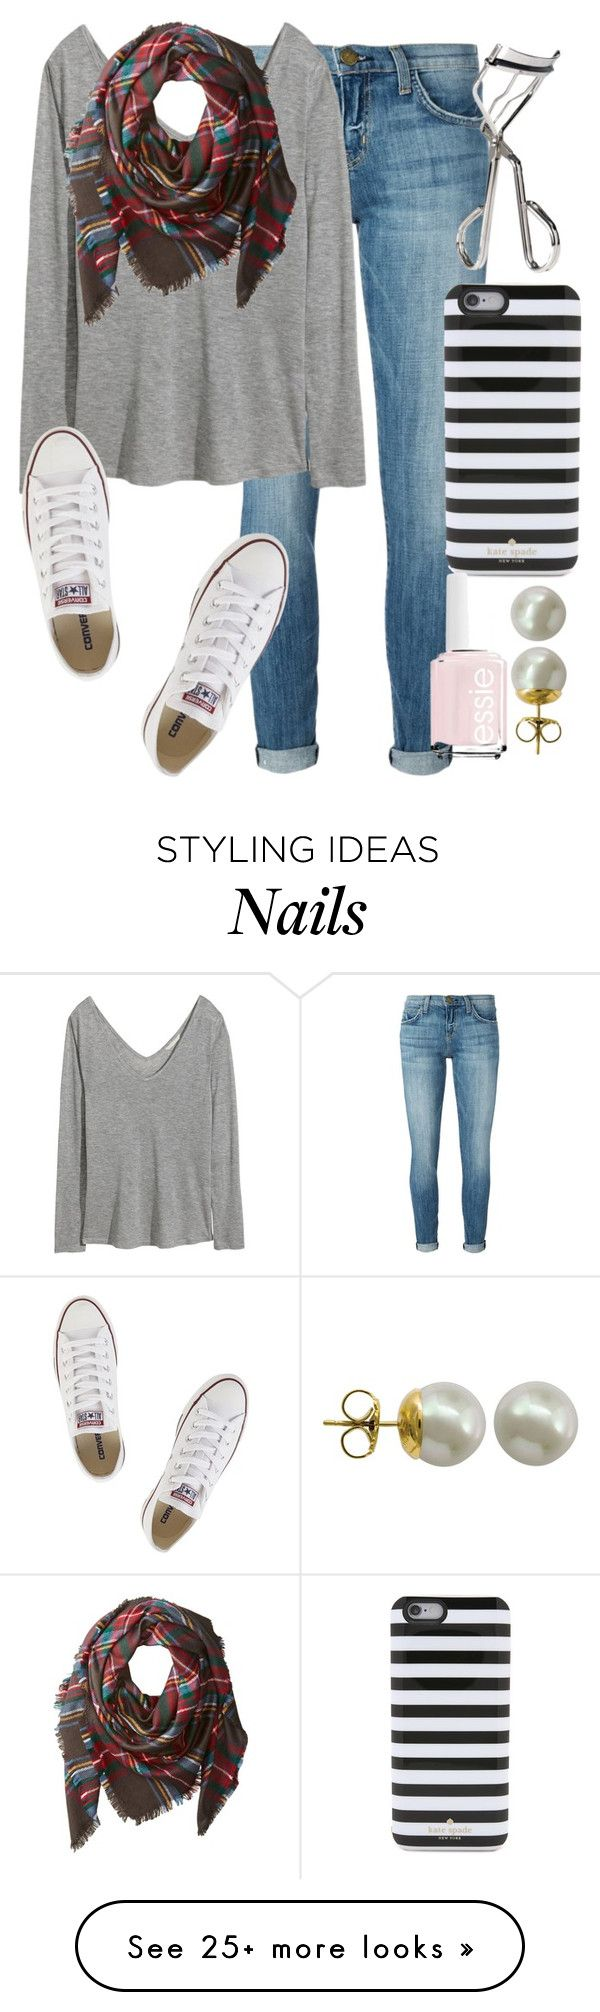 """*breaths rlly heavy bc is angry*"" by elizabethannee on Polyvore featuring Current/Elliott, Kate Spade, H&M, Benefit, Buji Baja, Converse, Essie and Majorica"